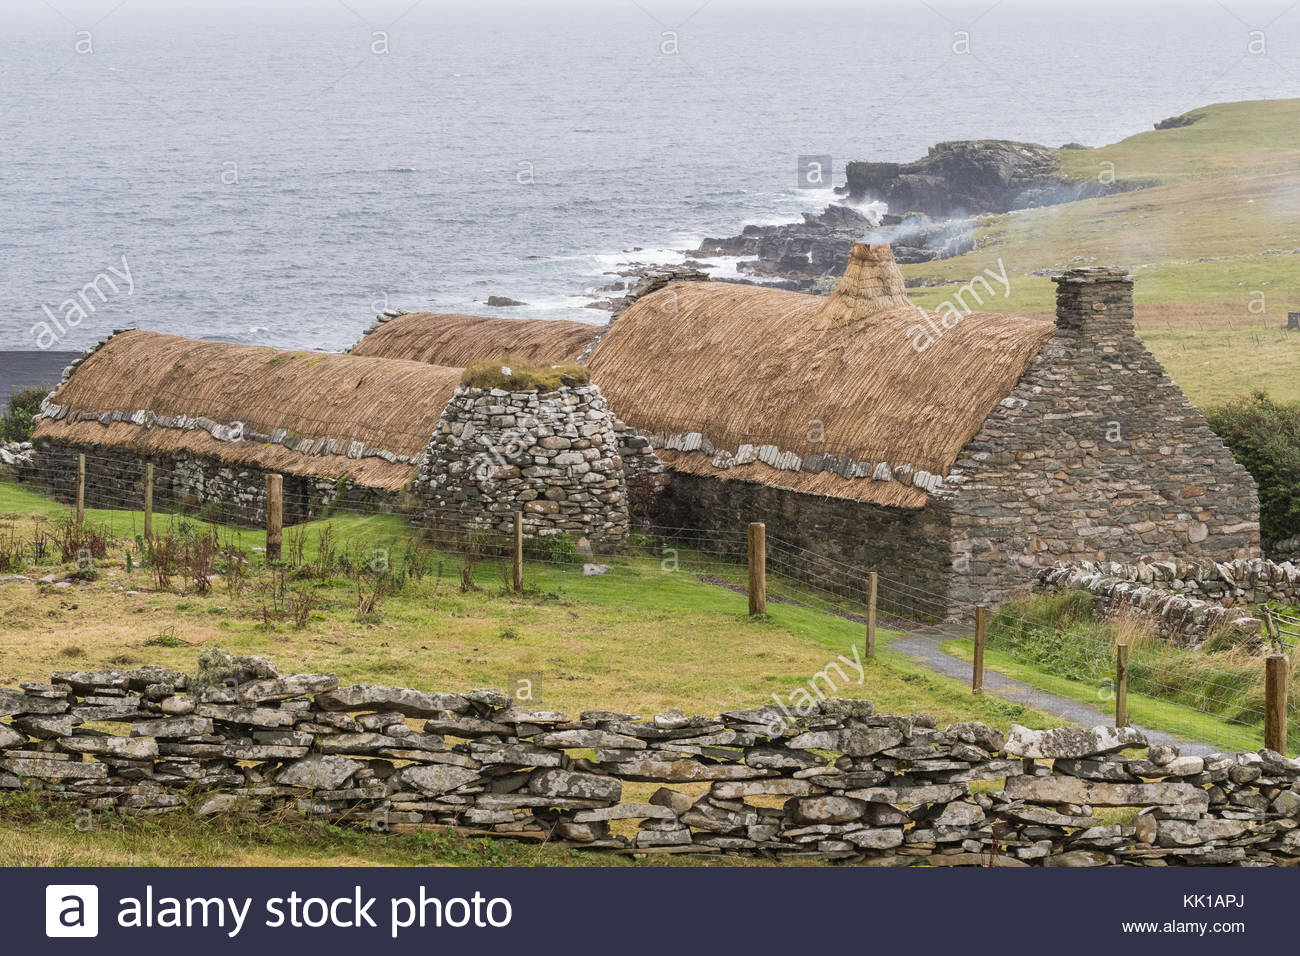 Shetland Croft House Museum Orkney and Shetland Islands, Crofthouse Stock Photos & Crofthouse Stock Images - Alamy